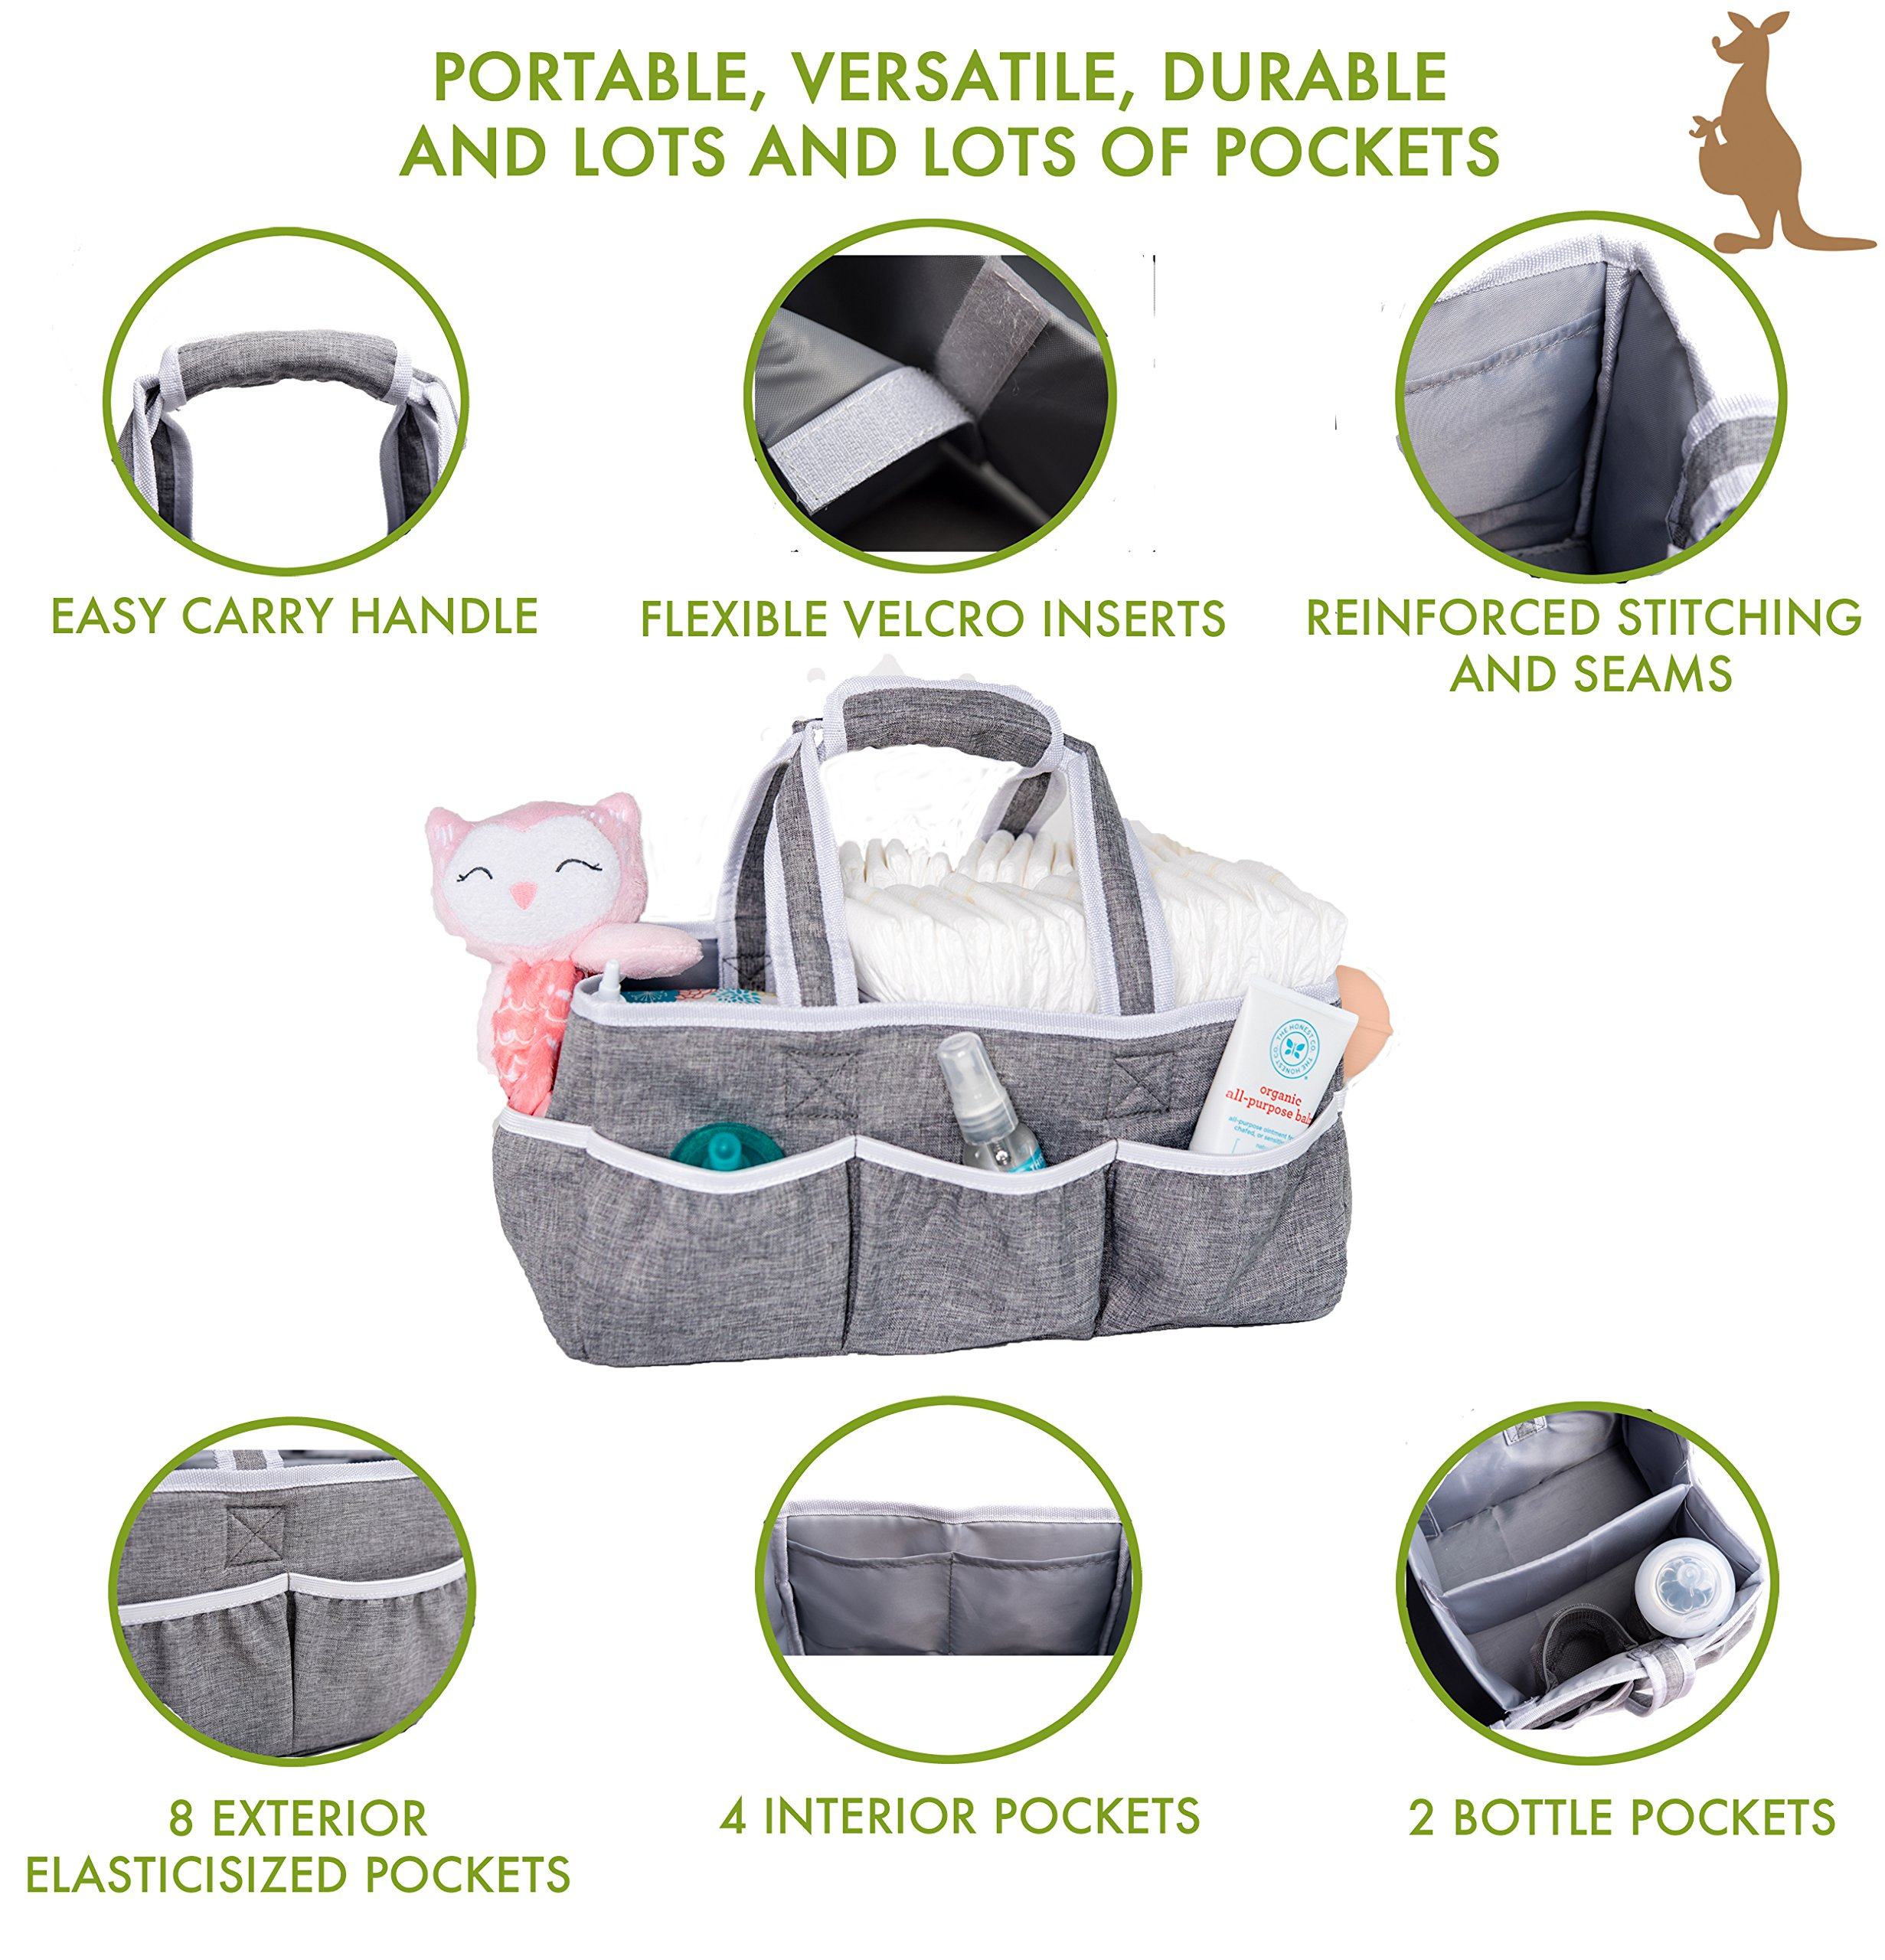 Wallaby Diaper Caddy Storage Bin - Organizer for Diapers, Wipes, Baby Bottles and More. Great for Home, Car, Travel or a Baby Shower Gift. by Bed Buddy (Image #4)